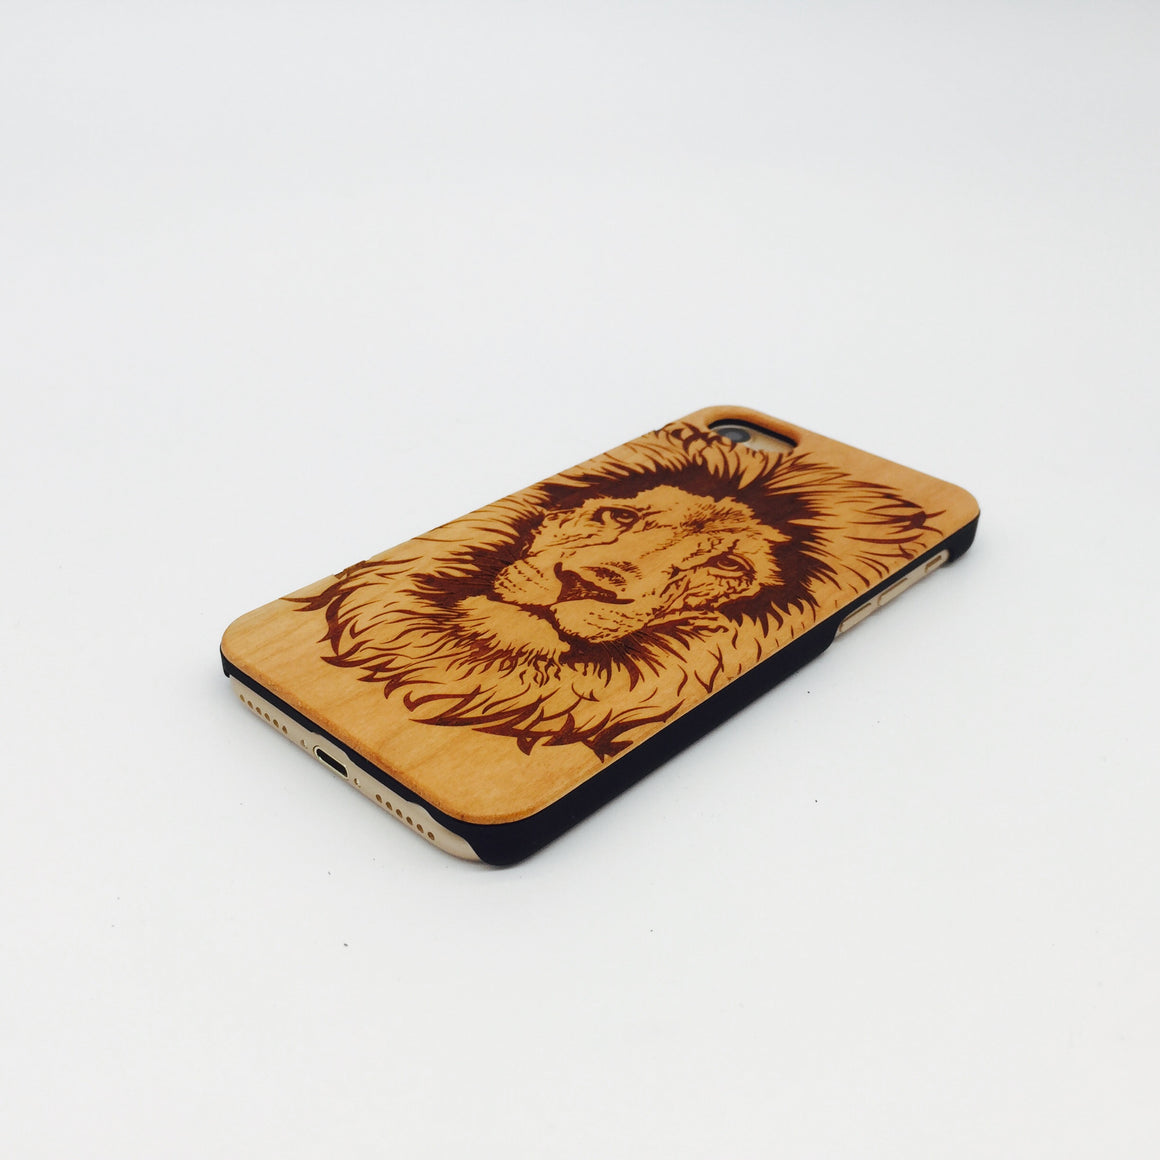 Lion | iPhone 7, iPhone 7 Plus, iPhone 8/ iPhone 8 Plus Slim Back